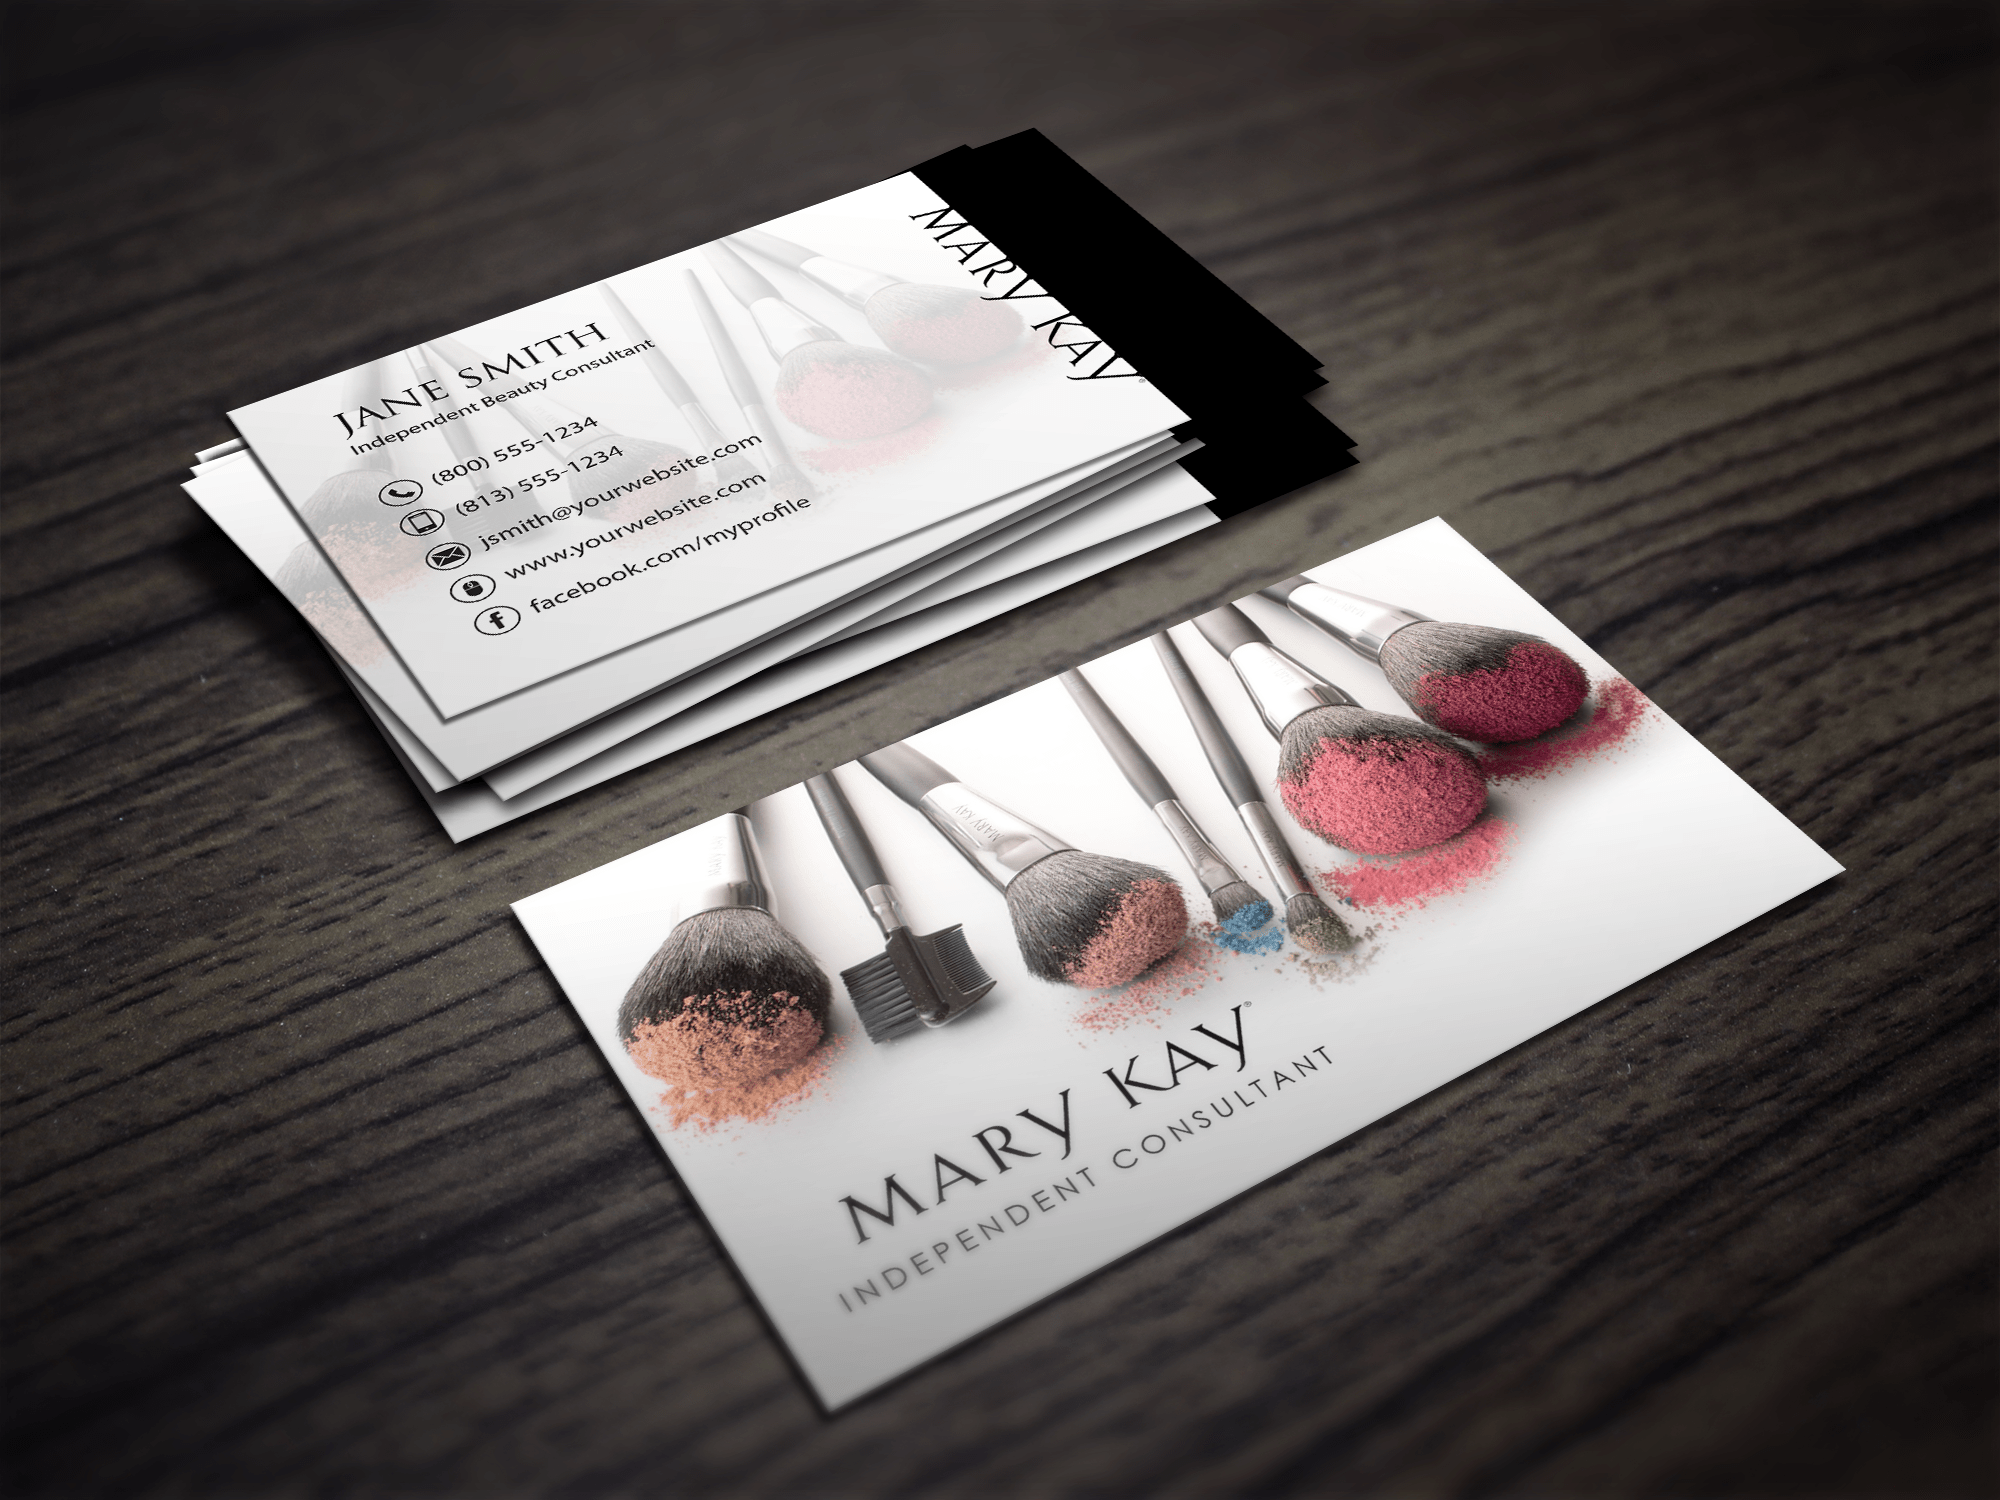 11211 marykay marykay1 business card template html code - 11211 Marykay Marykay1 Business Card Template Html Code Makeup Business Card Design For A Mary Download